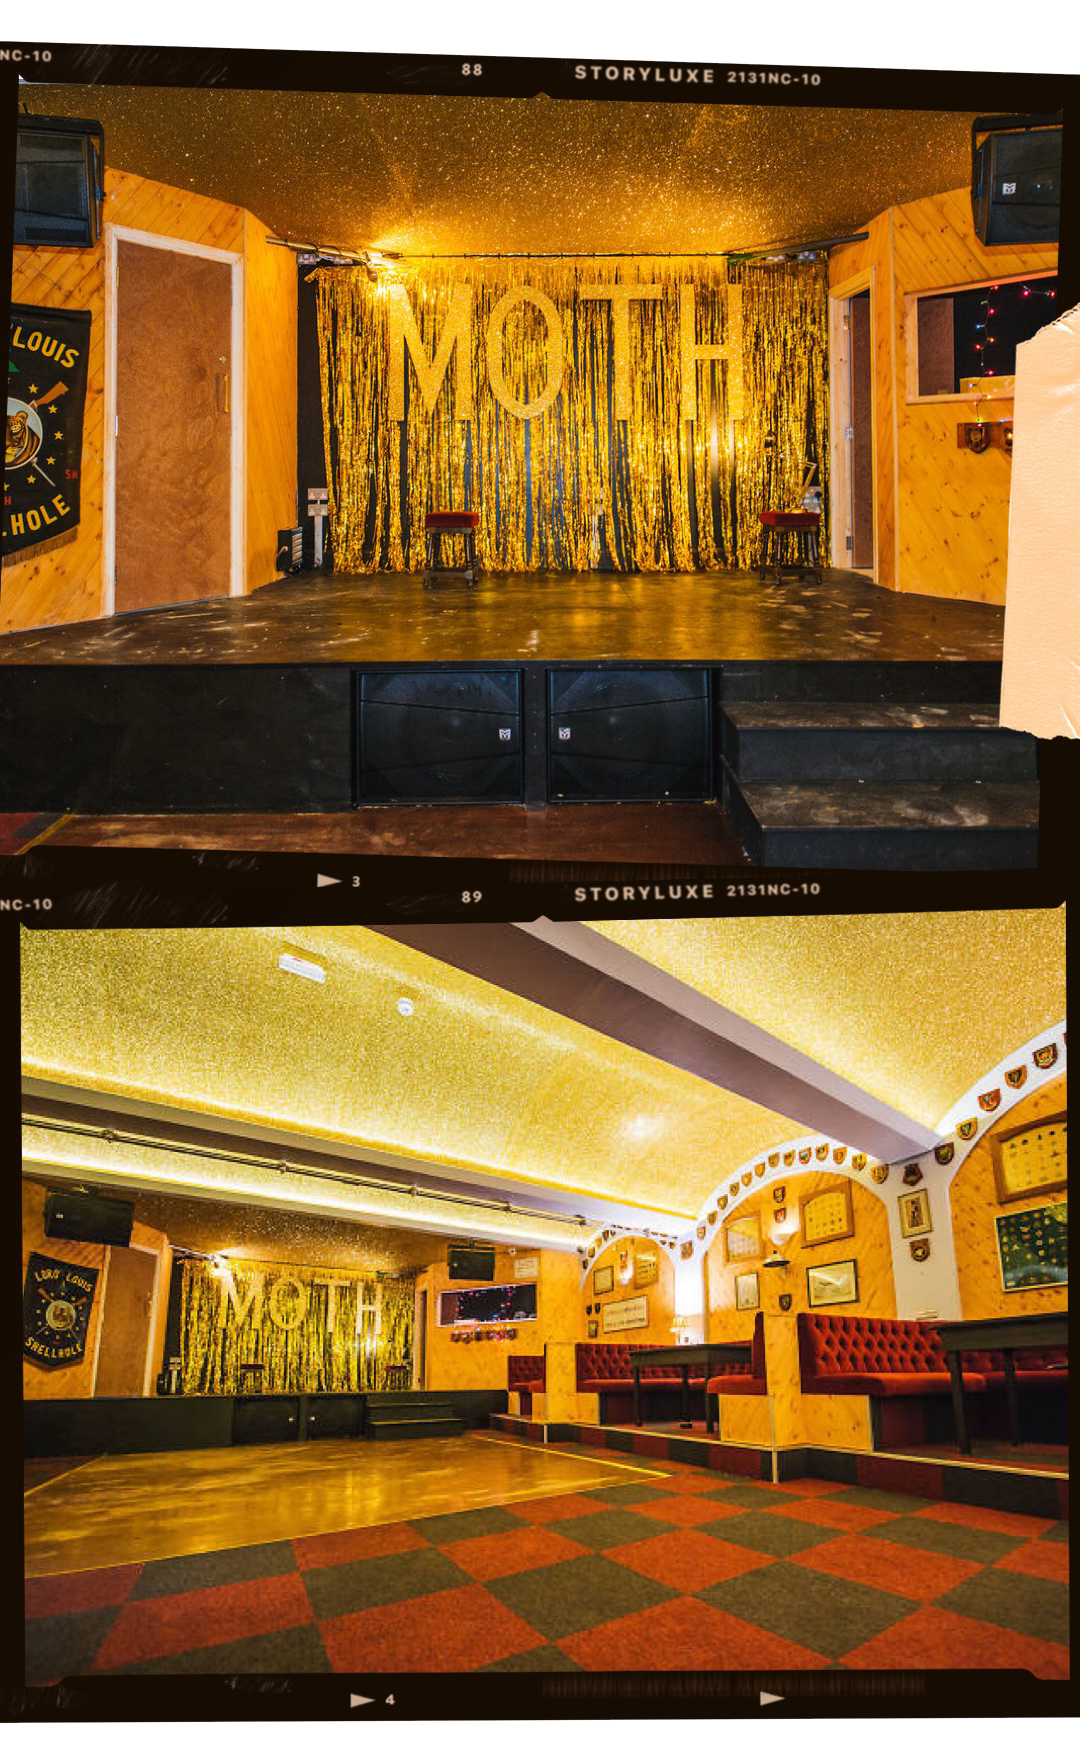 MOTH CLUB - An ex-servicemen's club is now home to the funkiest events ranging from karaoke nights to live gigs. If singing on stage is not your thing then make sure to check out an 80's party. As always check their calendar for what's on.Location:Old Trades Hall, Valette St., E9 6NU